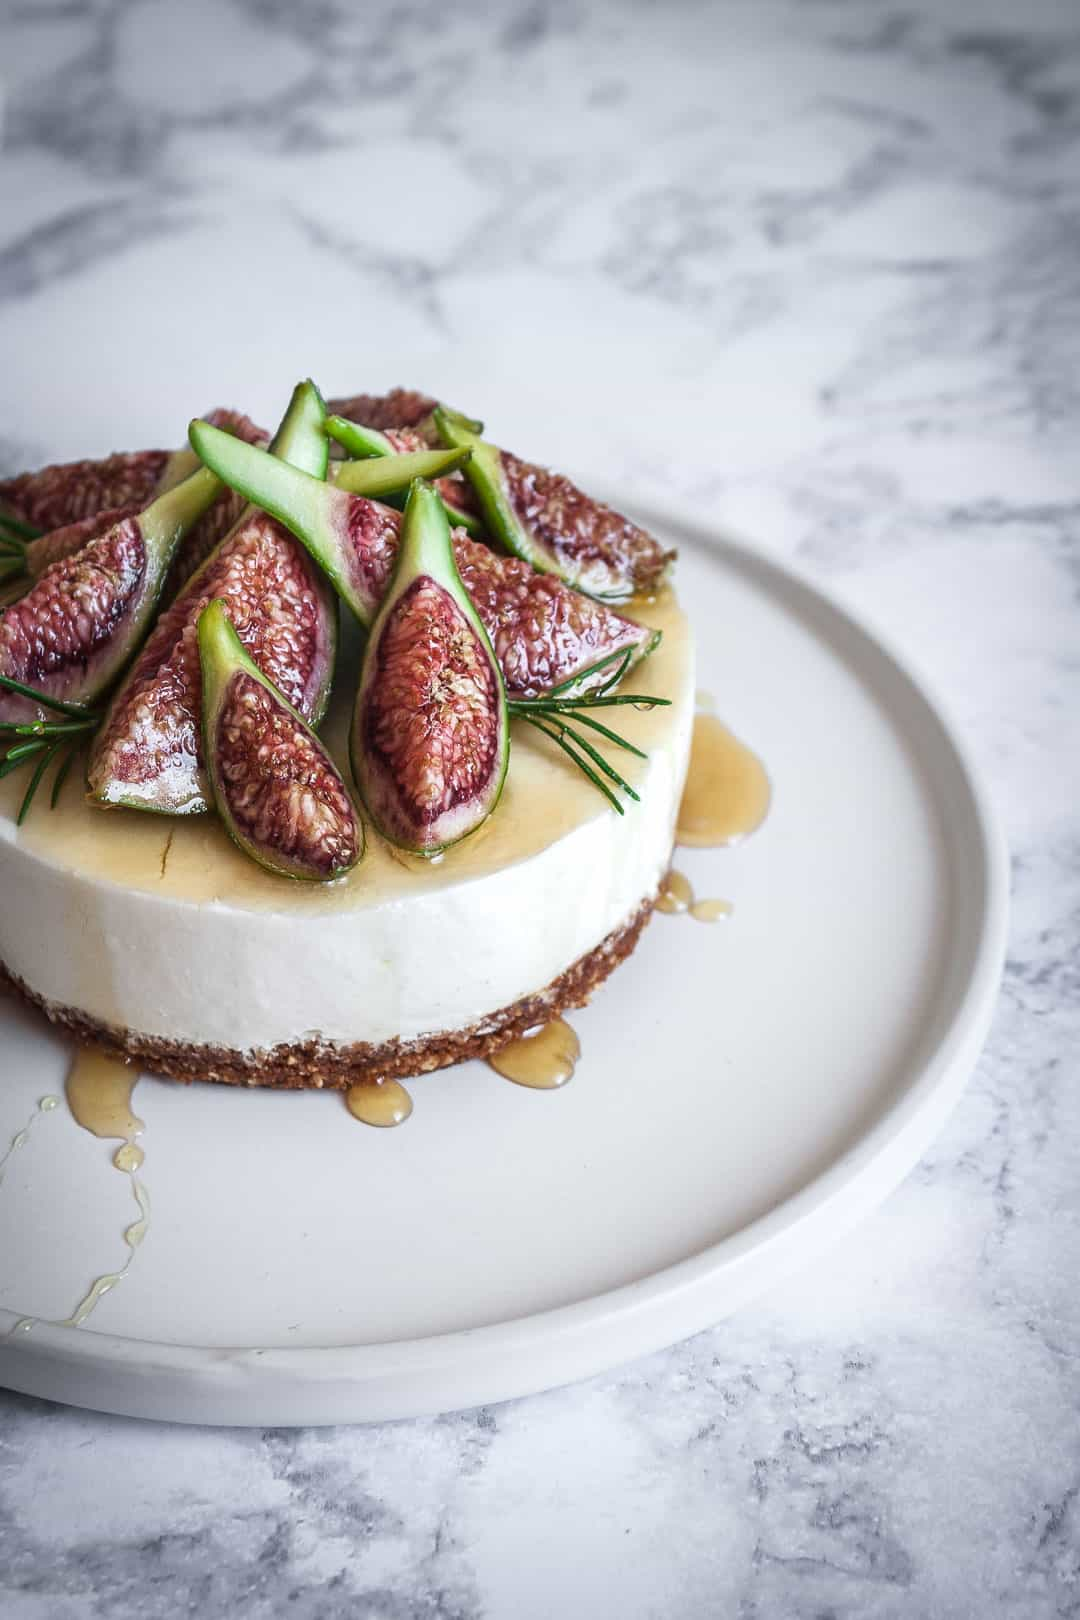 Honey orange cheesecake with figs and rosemary almond crust on a marble backdrop - angled close up view of cheescake with honey drizzled on top